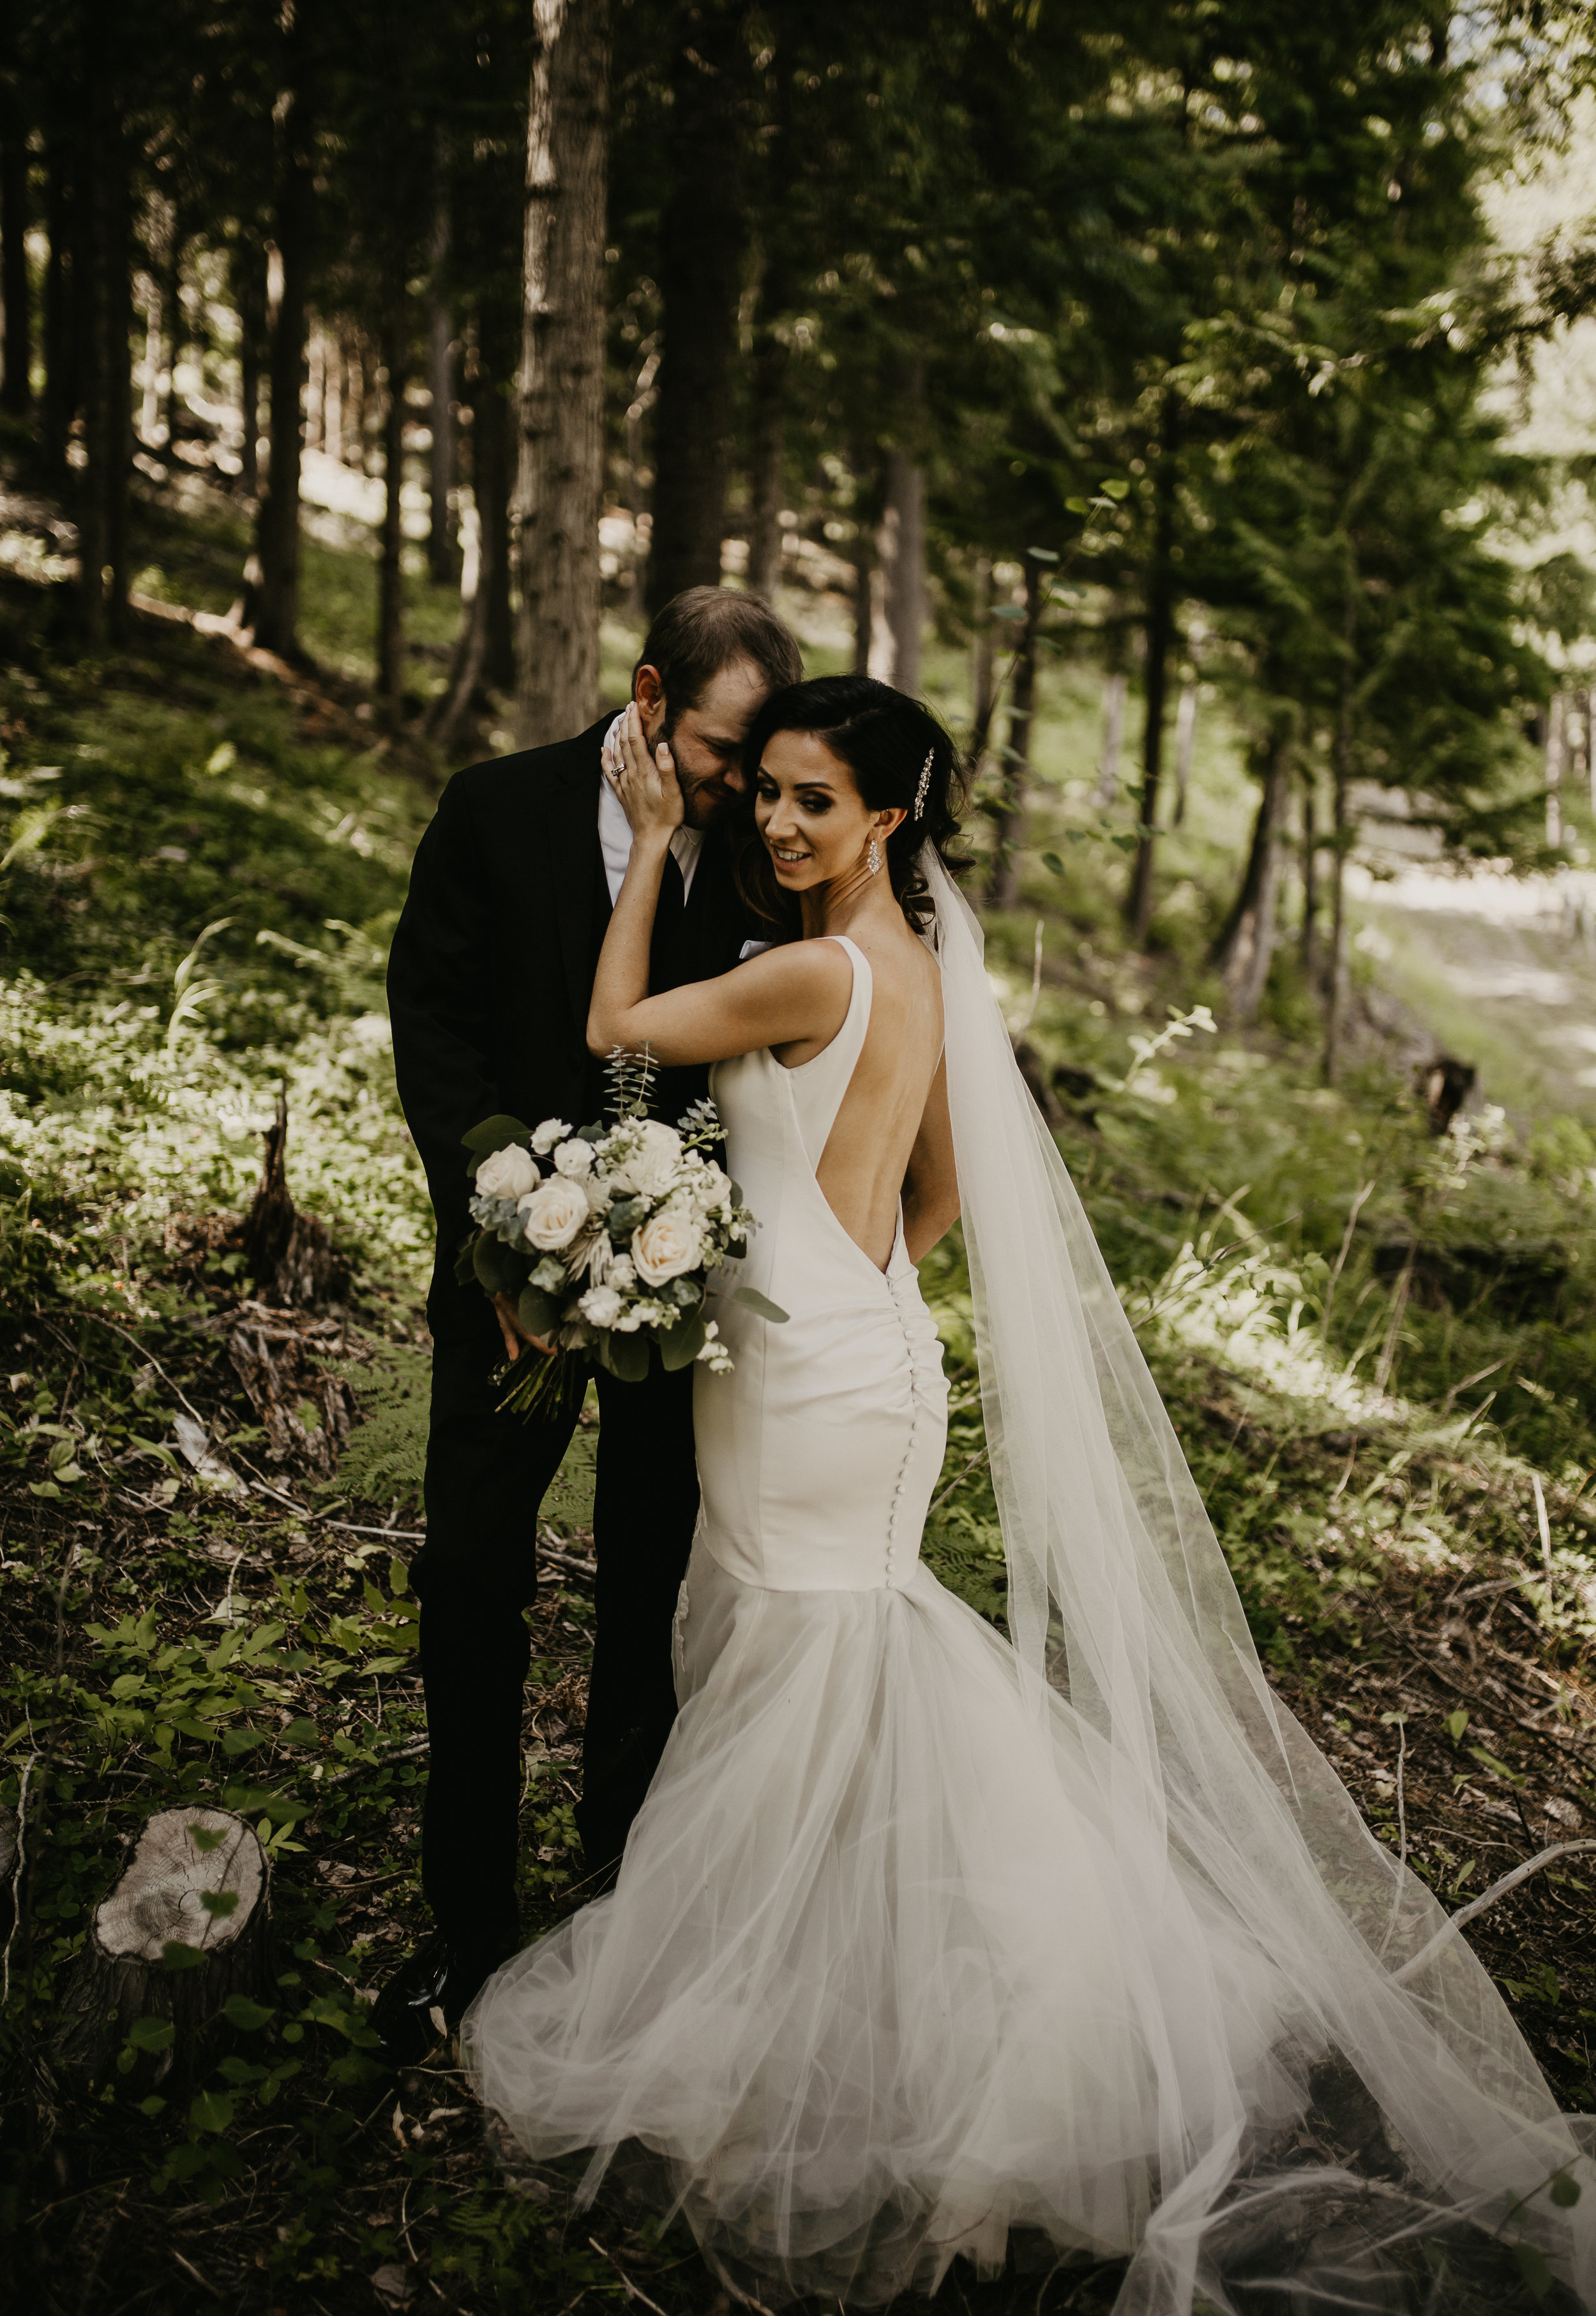 Bride and Groom standing in the forest during formal portraits